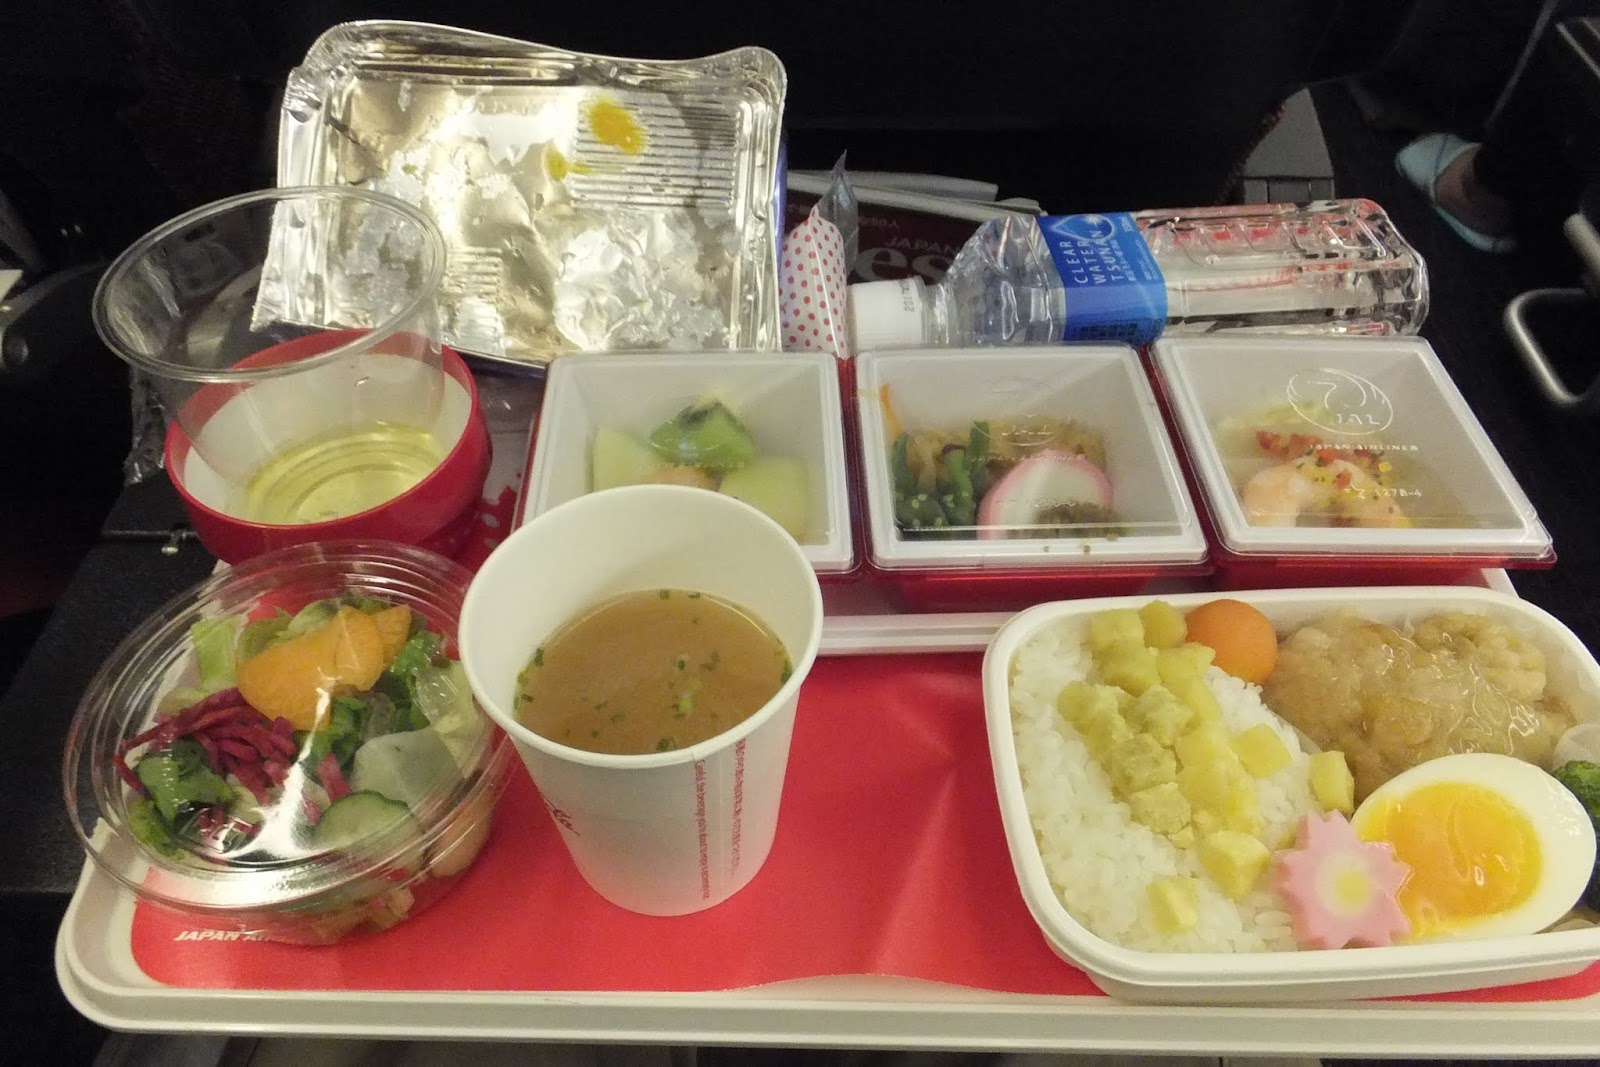 jl751flight-meal l751機内食